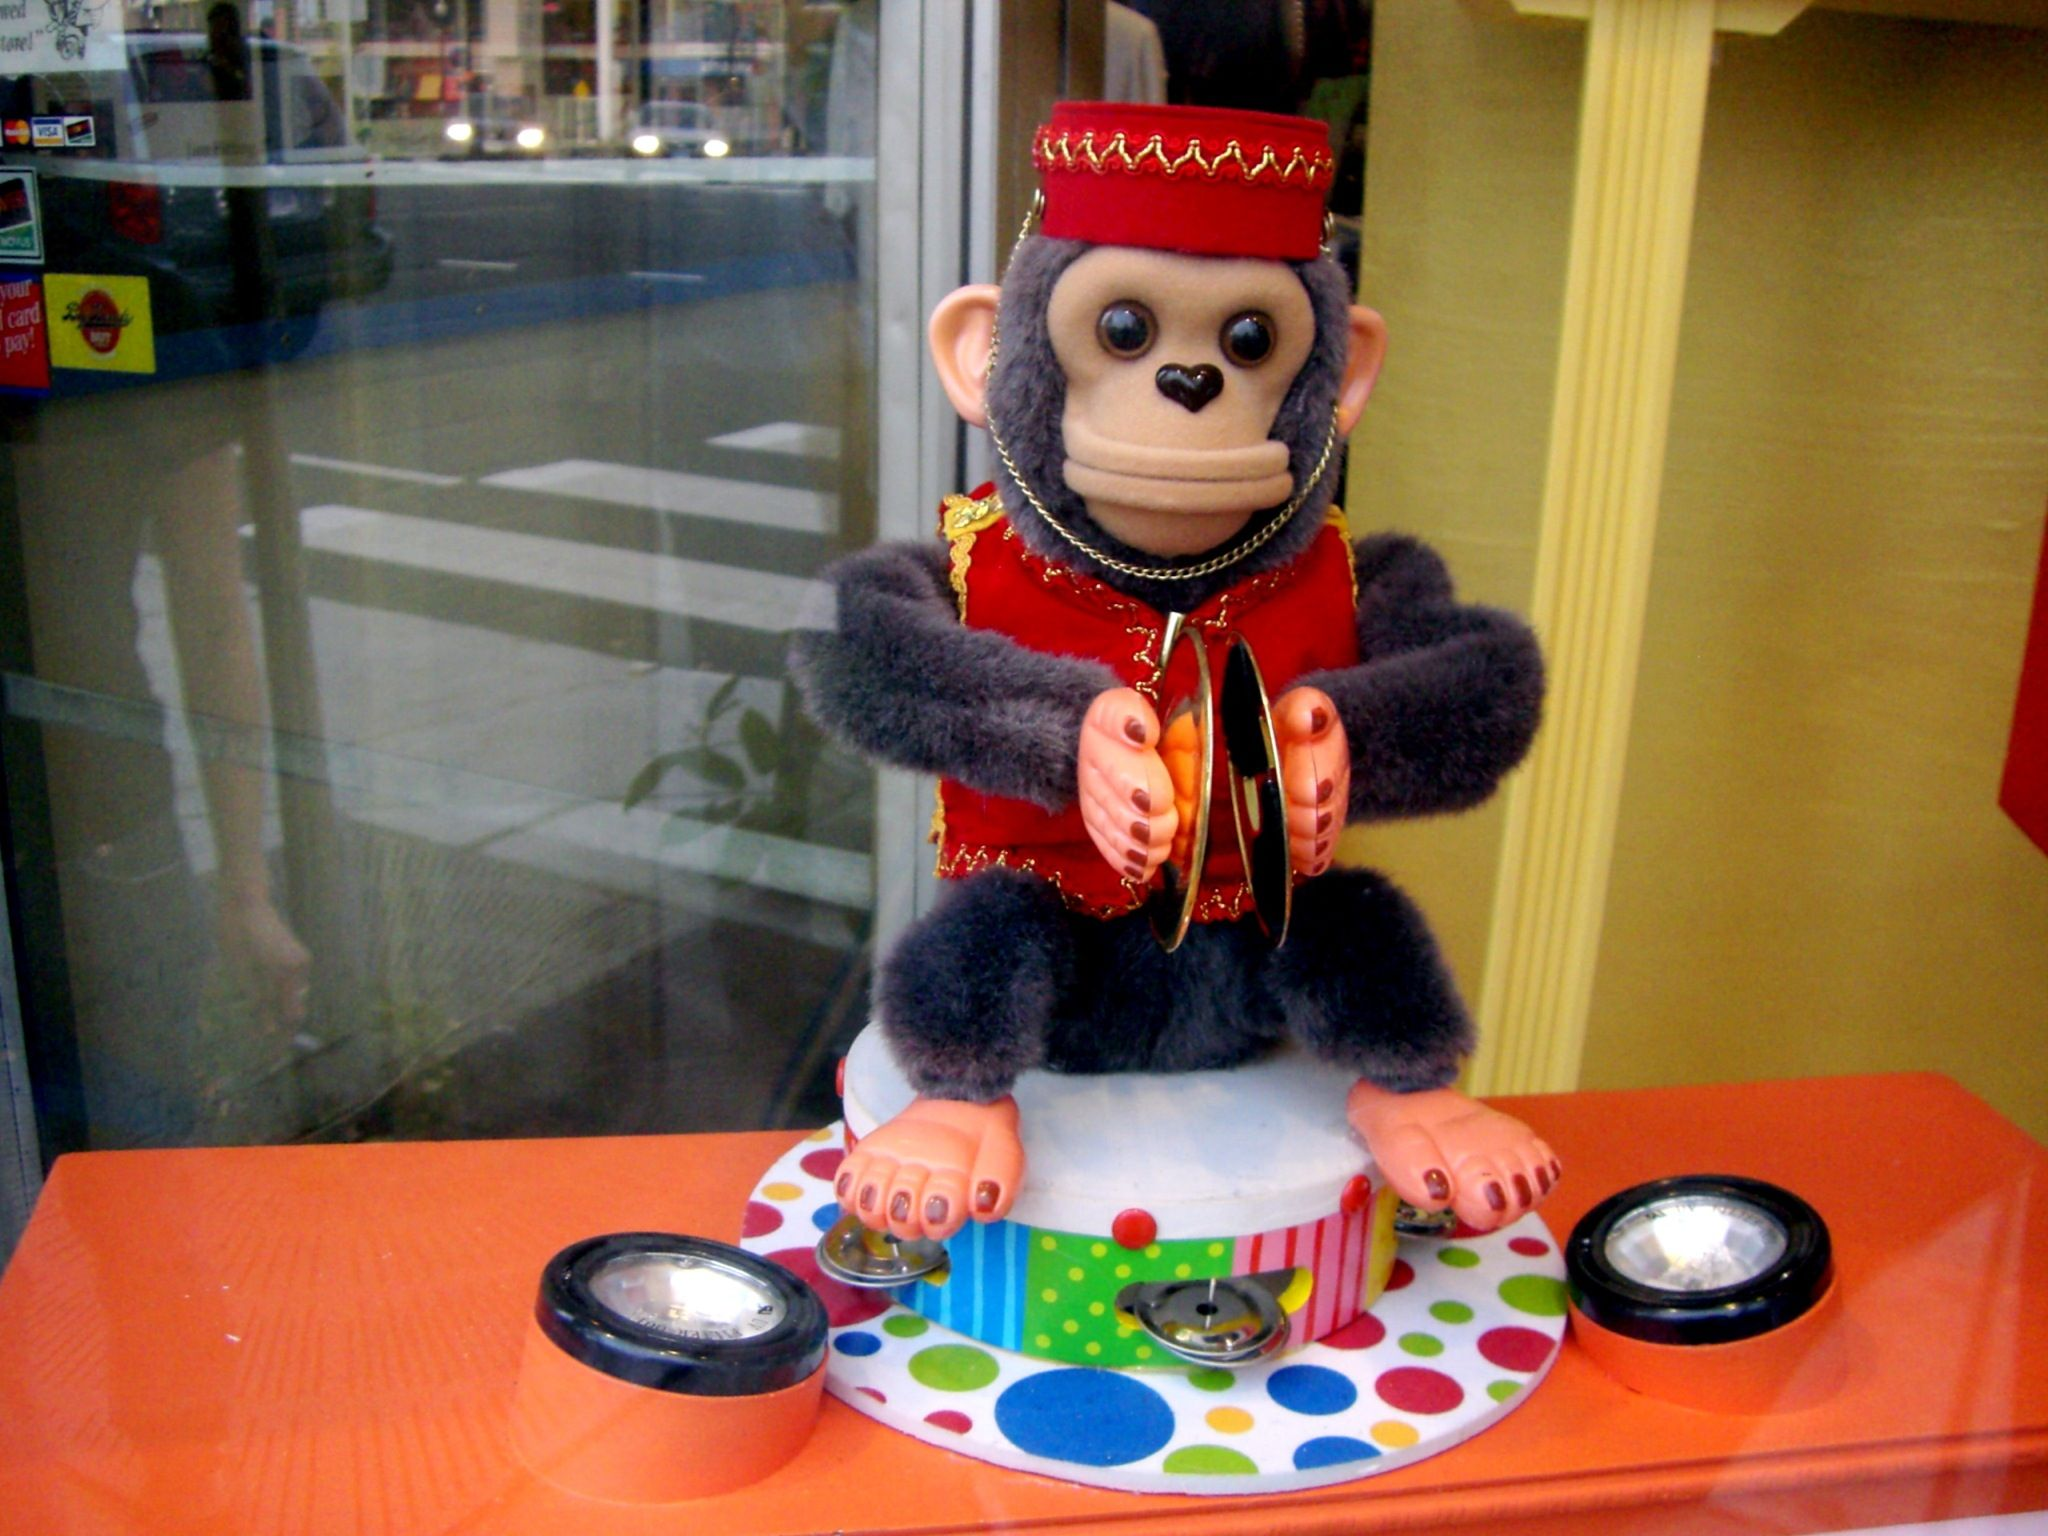 monkeys with cymbals in box cymbal banging monkey toy